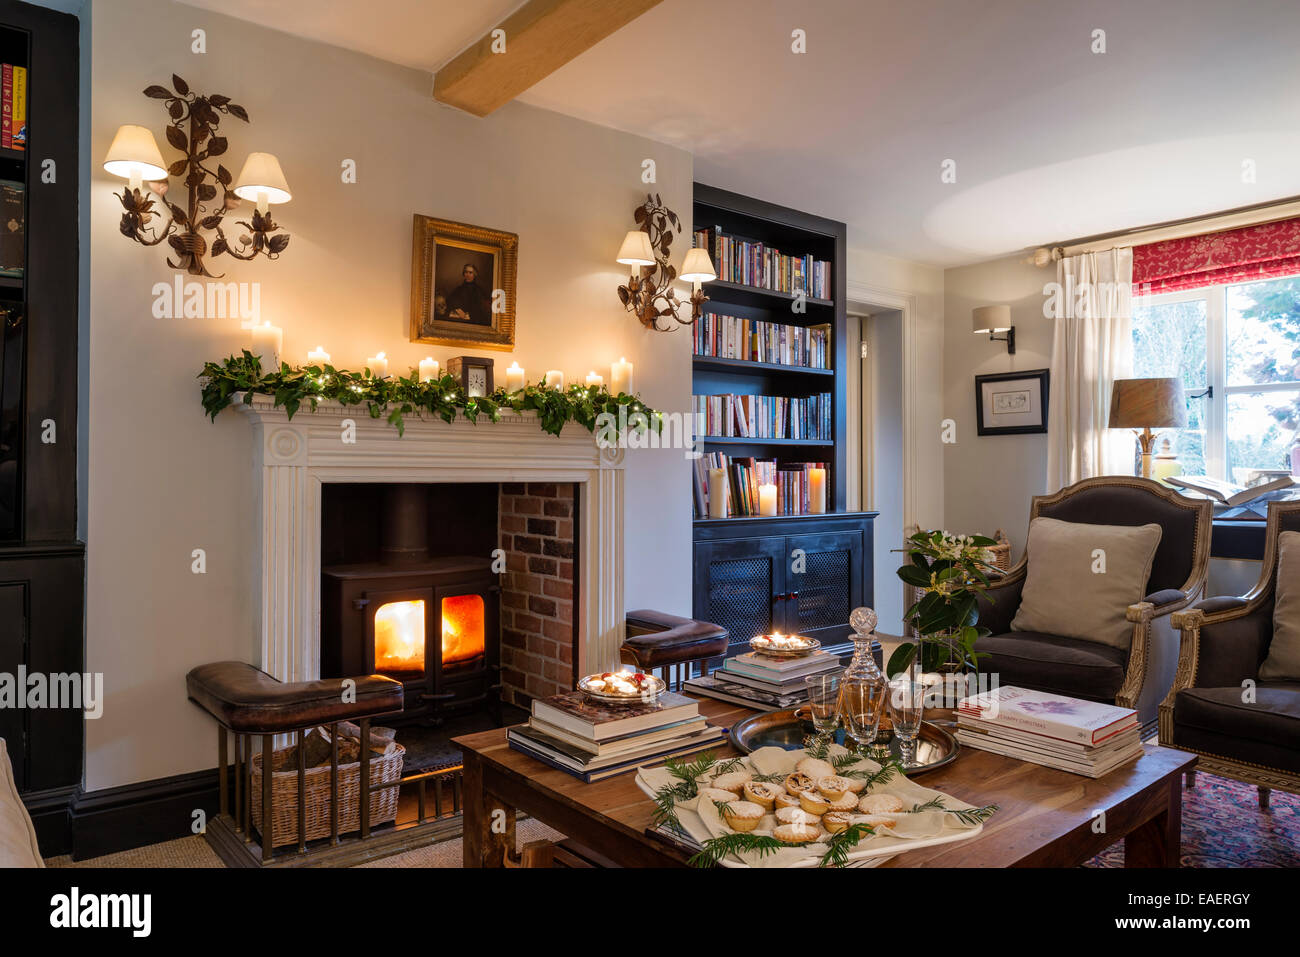 Woodburning stove with Georgian fire surround in living room with